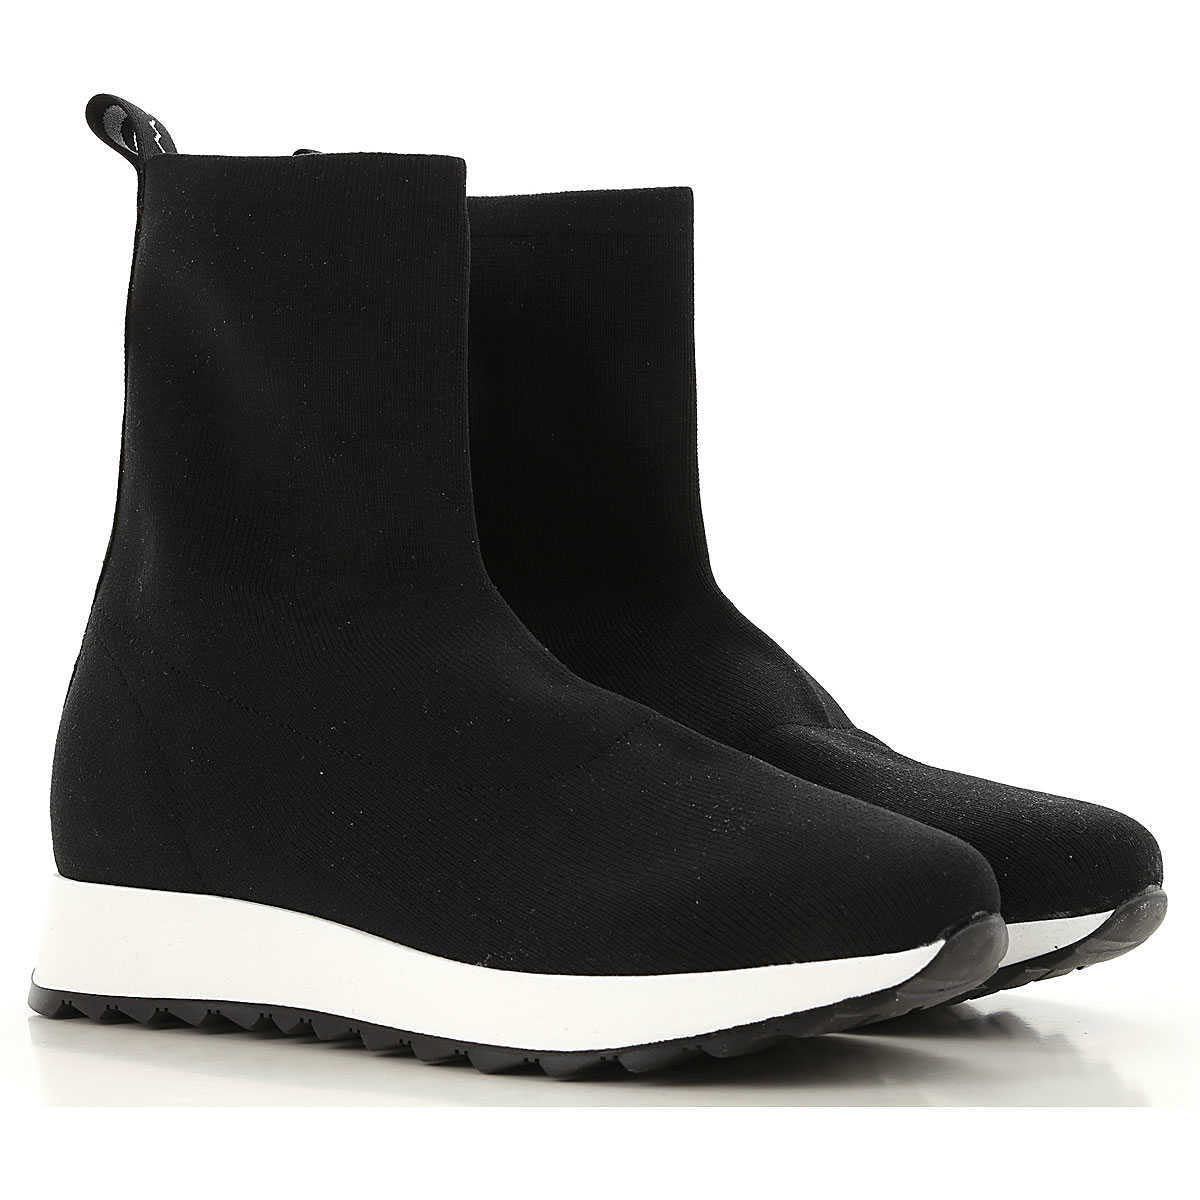 Anna Rita N Boots for Women Booties On Sale in Outlet Canada - GOOFASH - Womens BOOTS